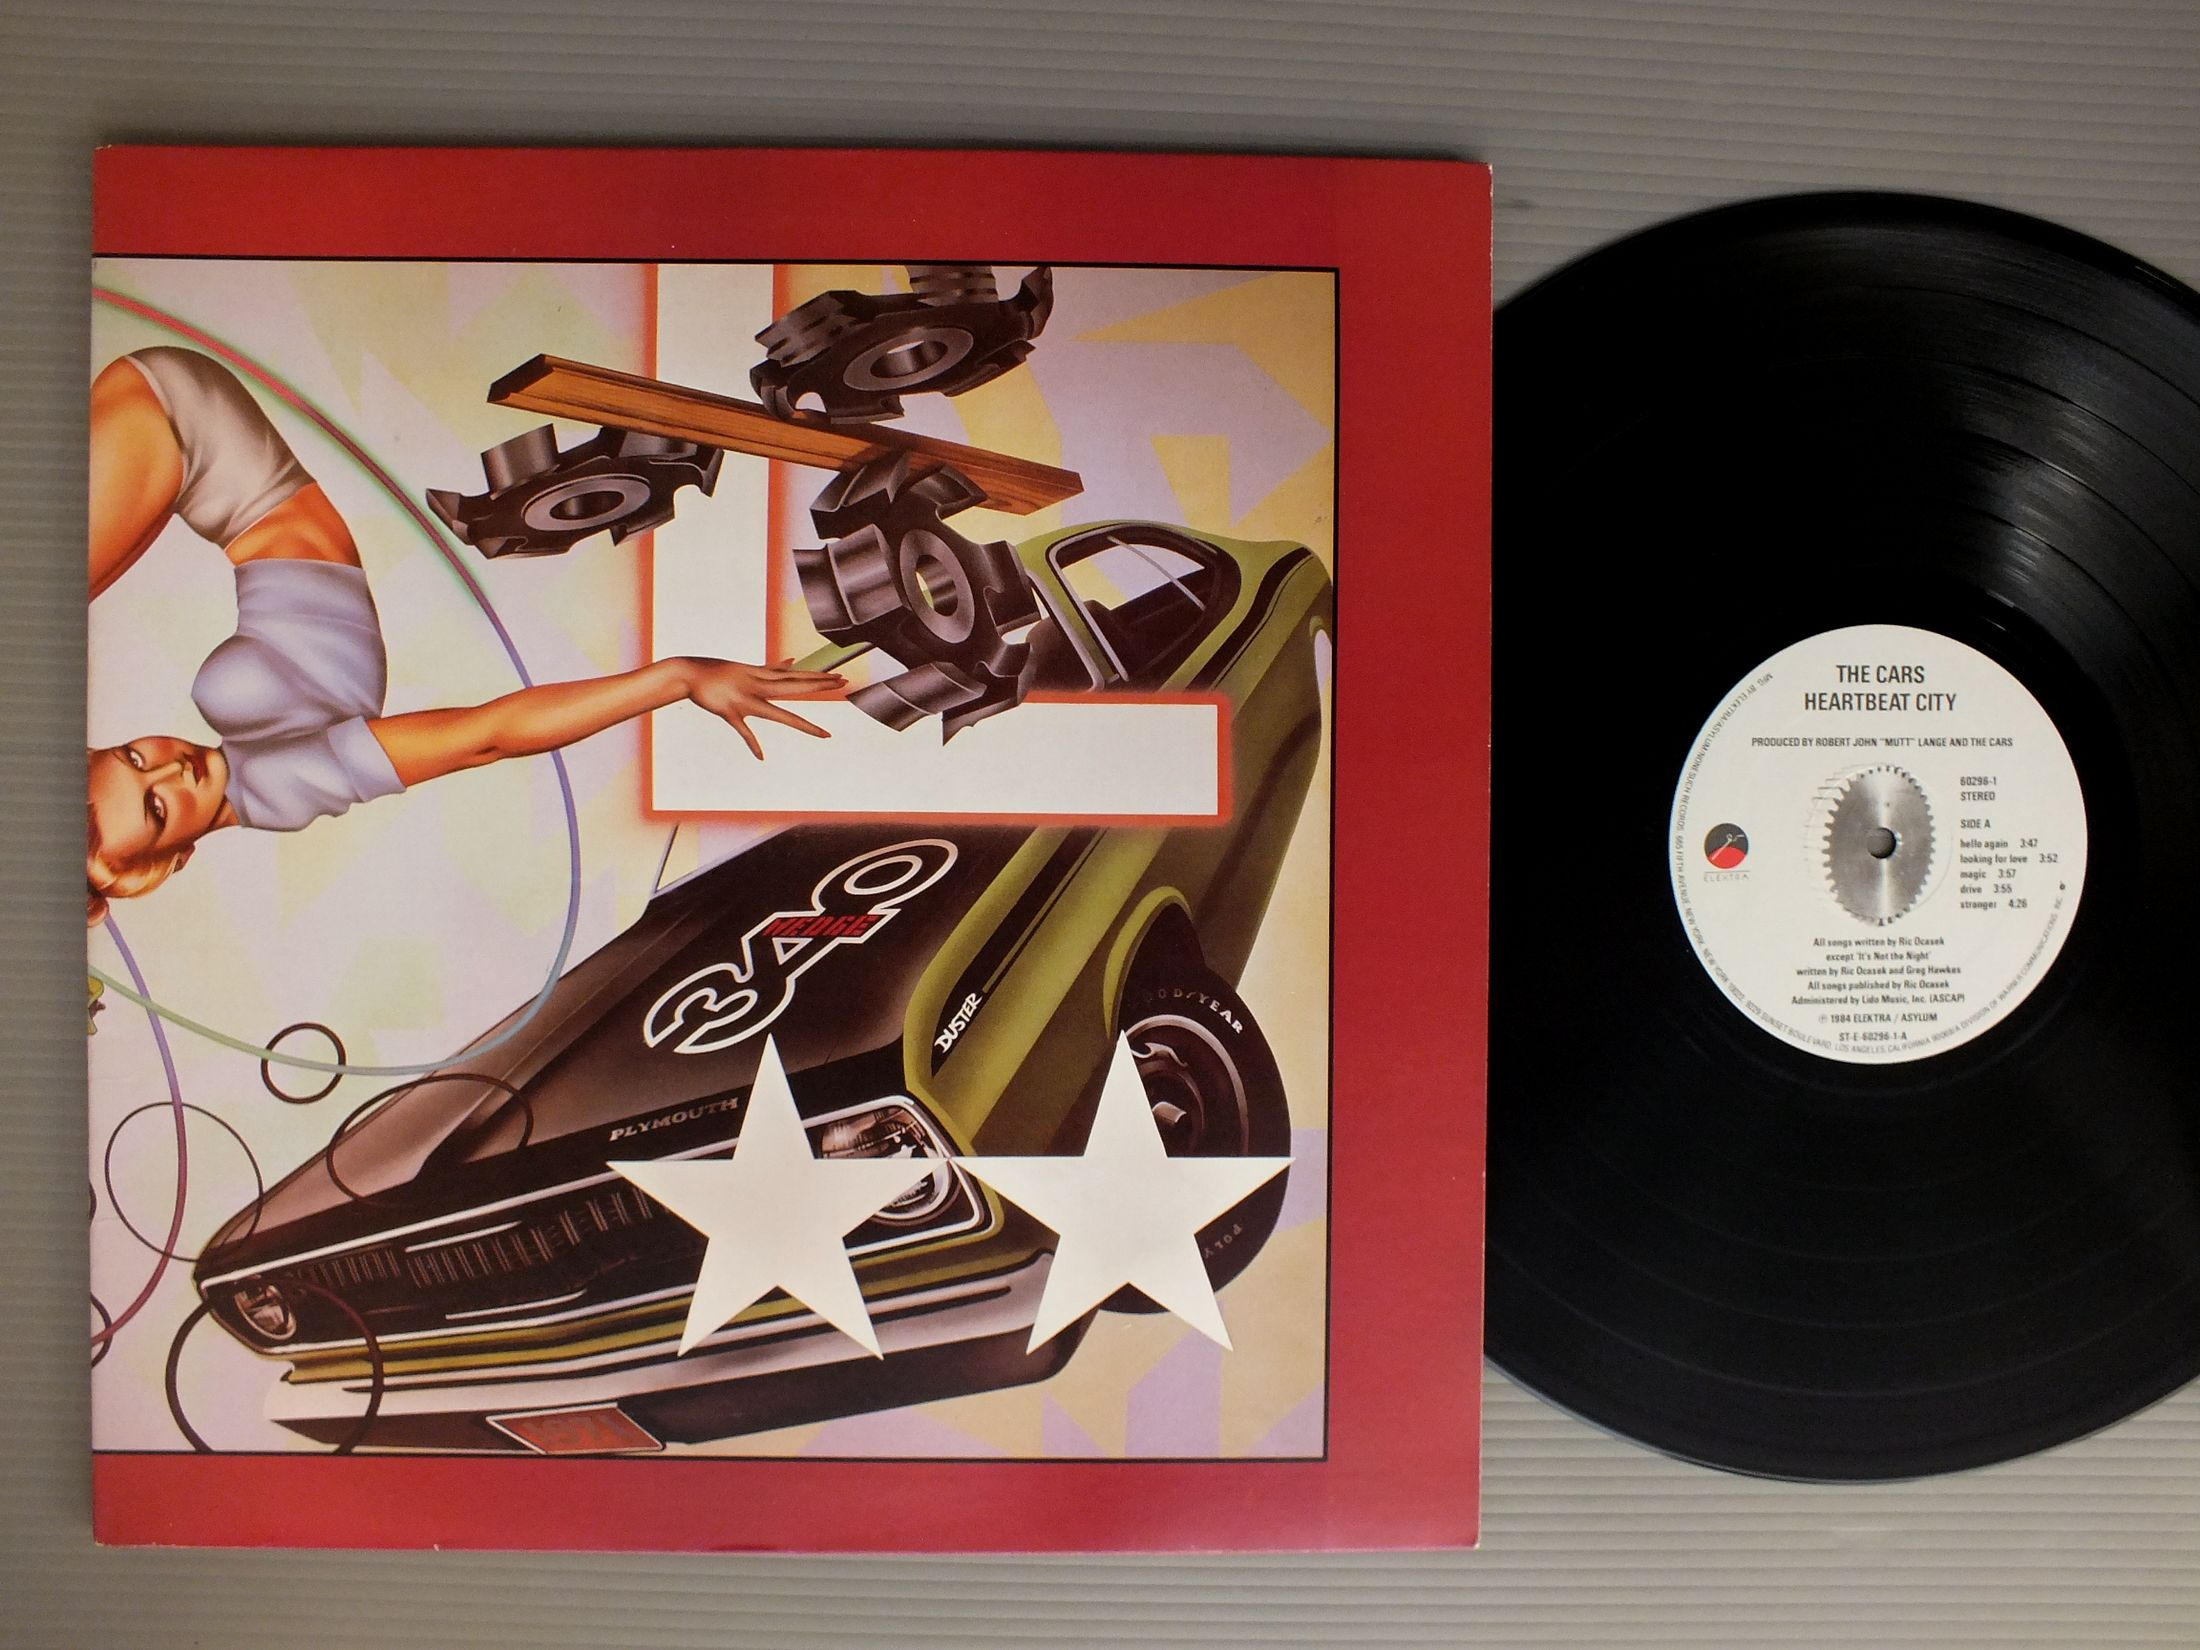 CARS - HEARTBEAT CITY - 33T